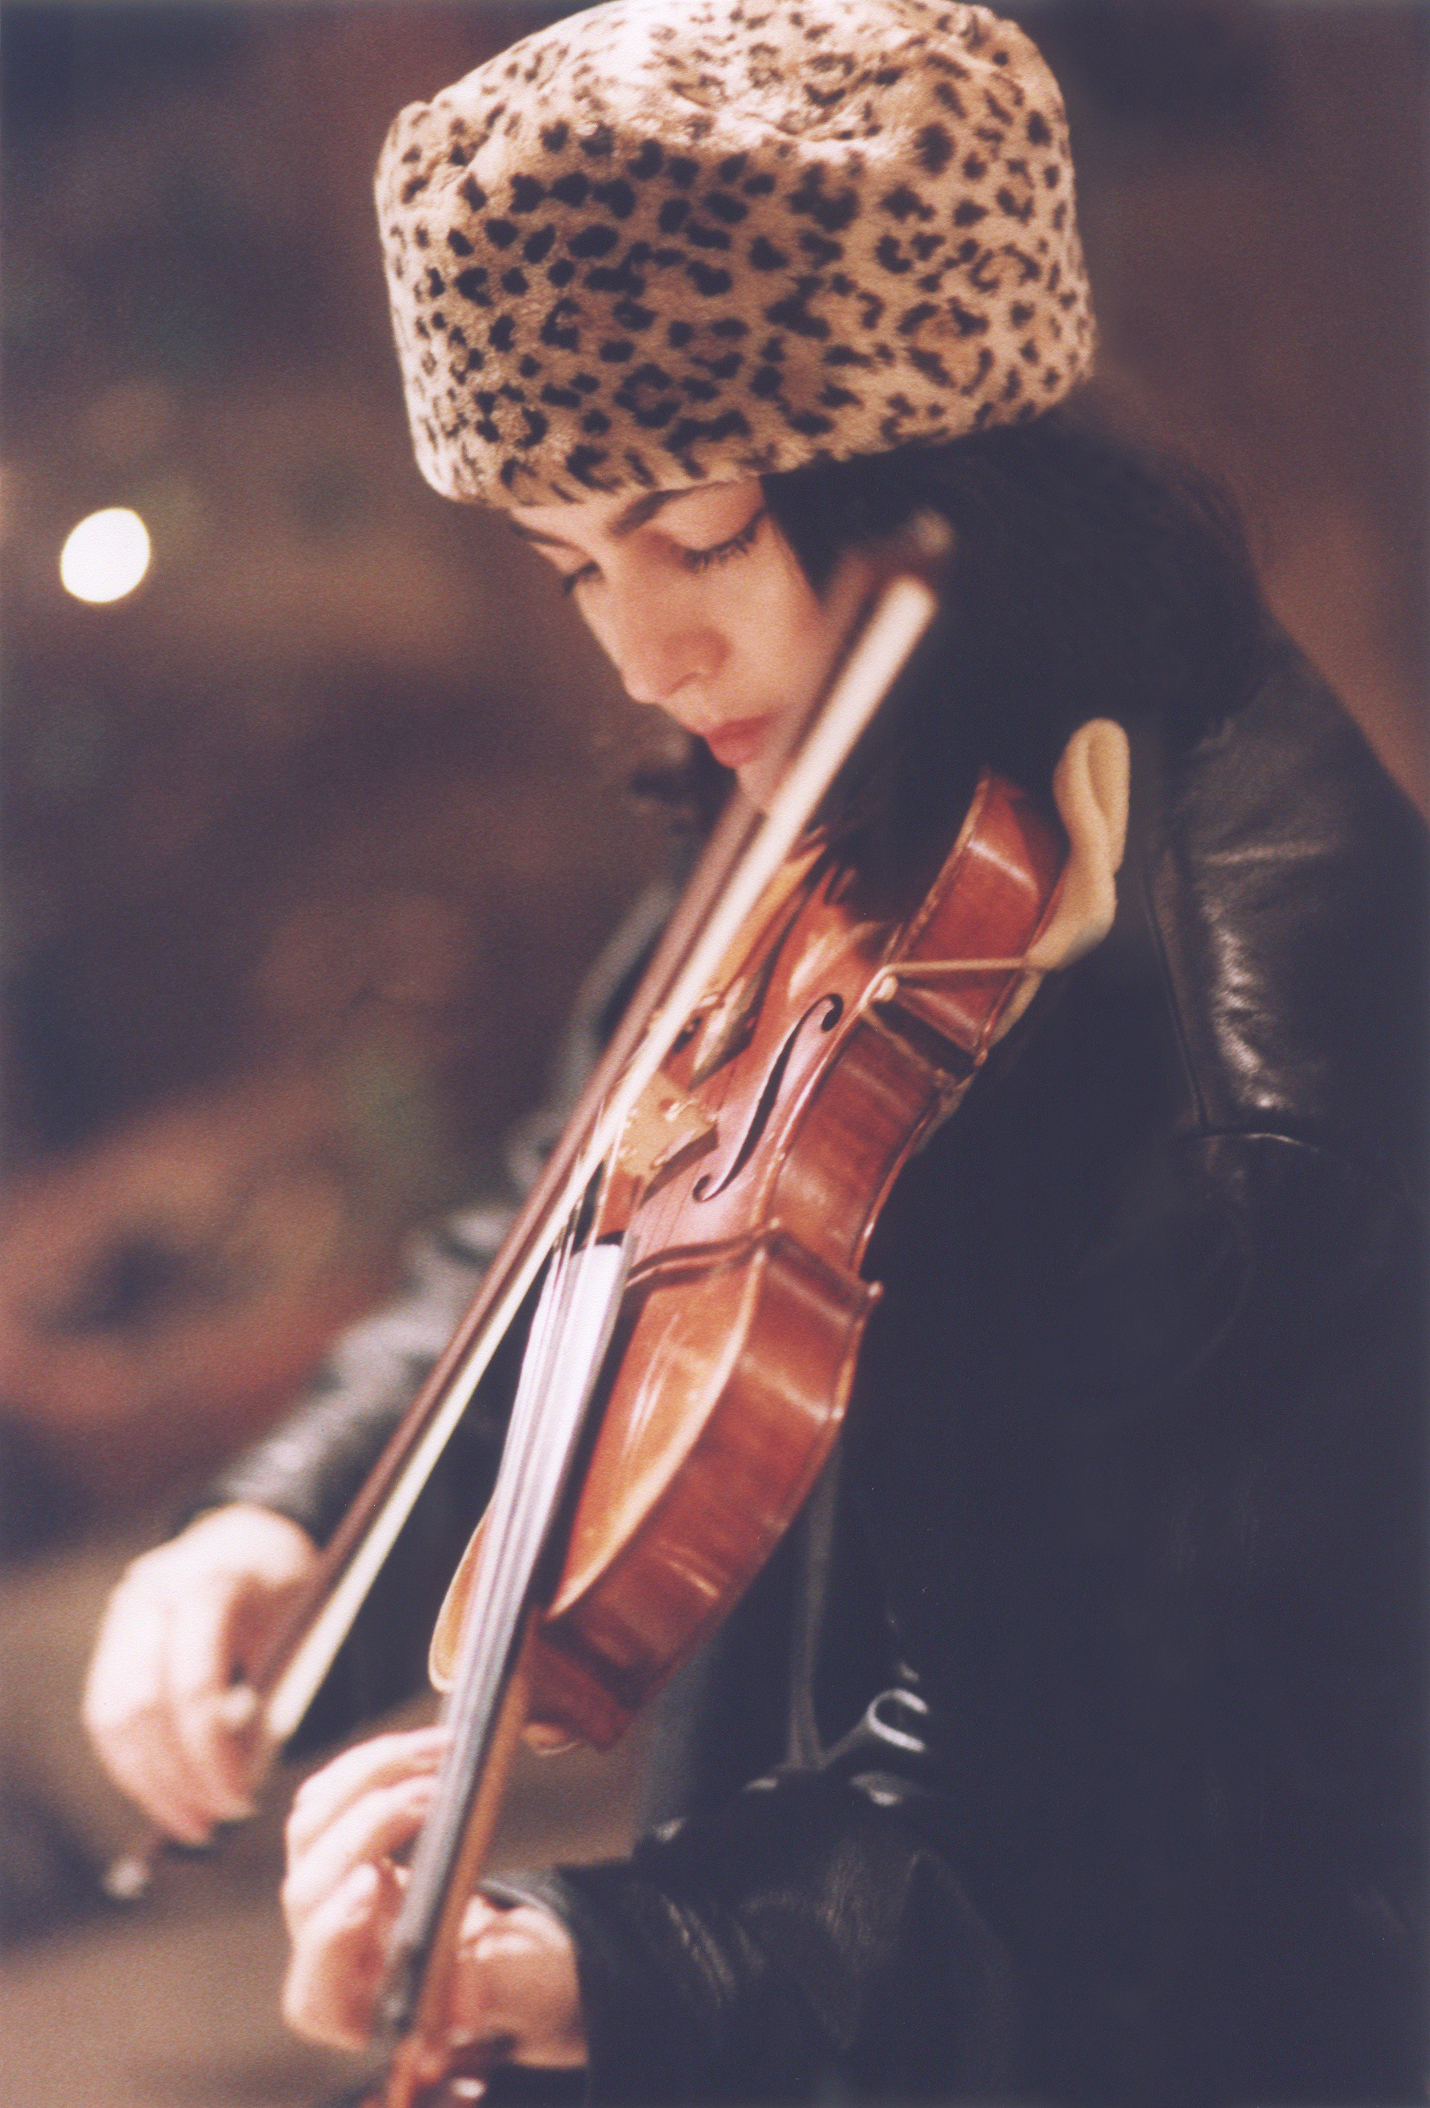 Calabria, Leopard Hat and Violin